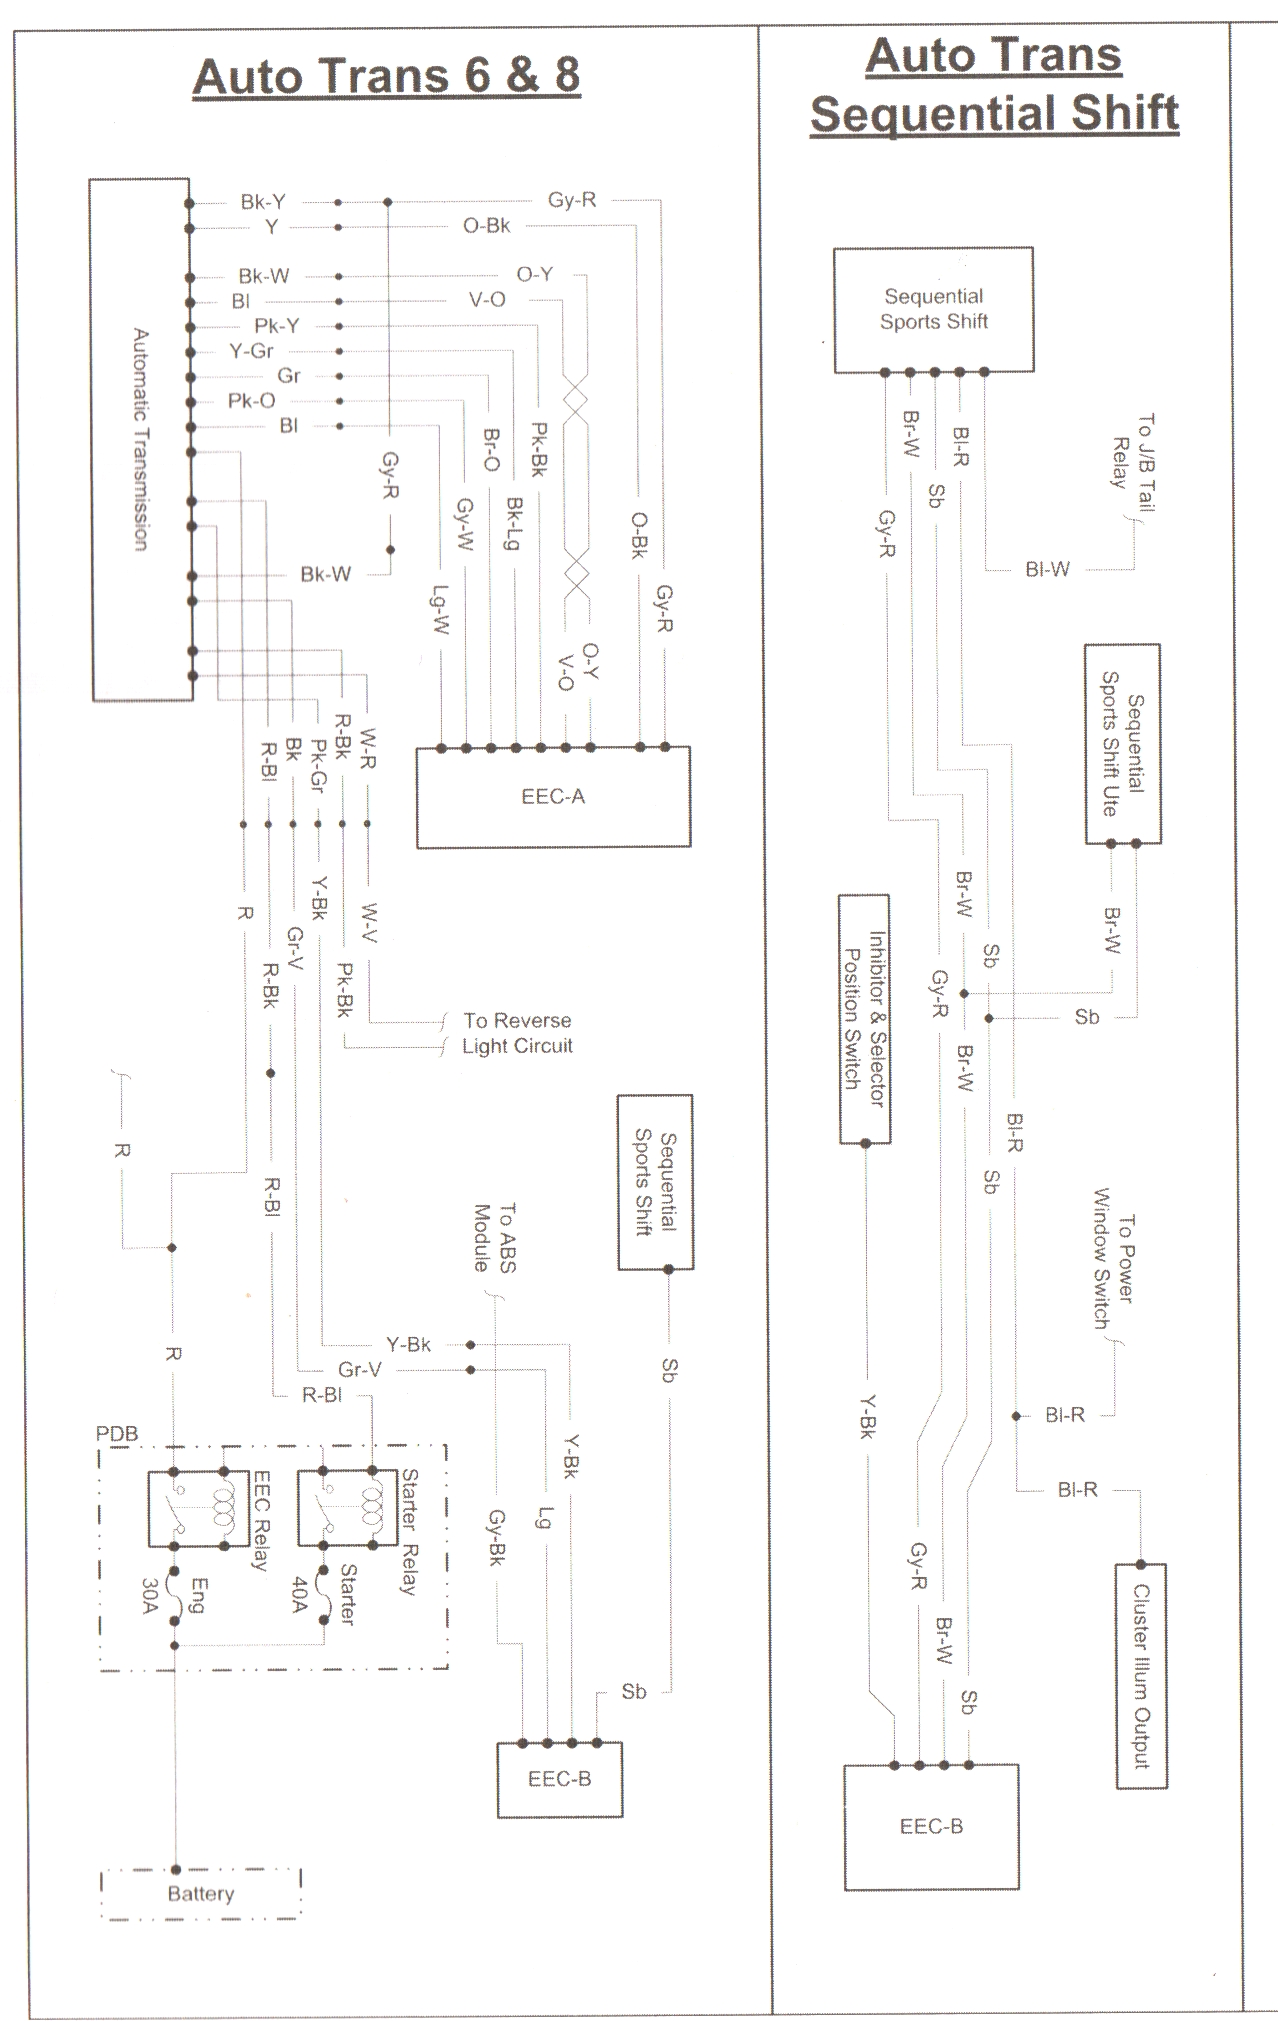 Wiring Diagram For Zf 6 Speed Auto